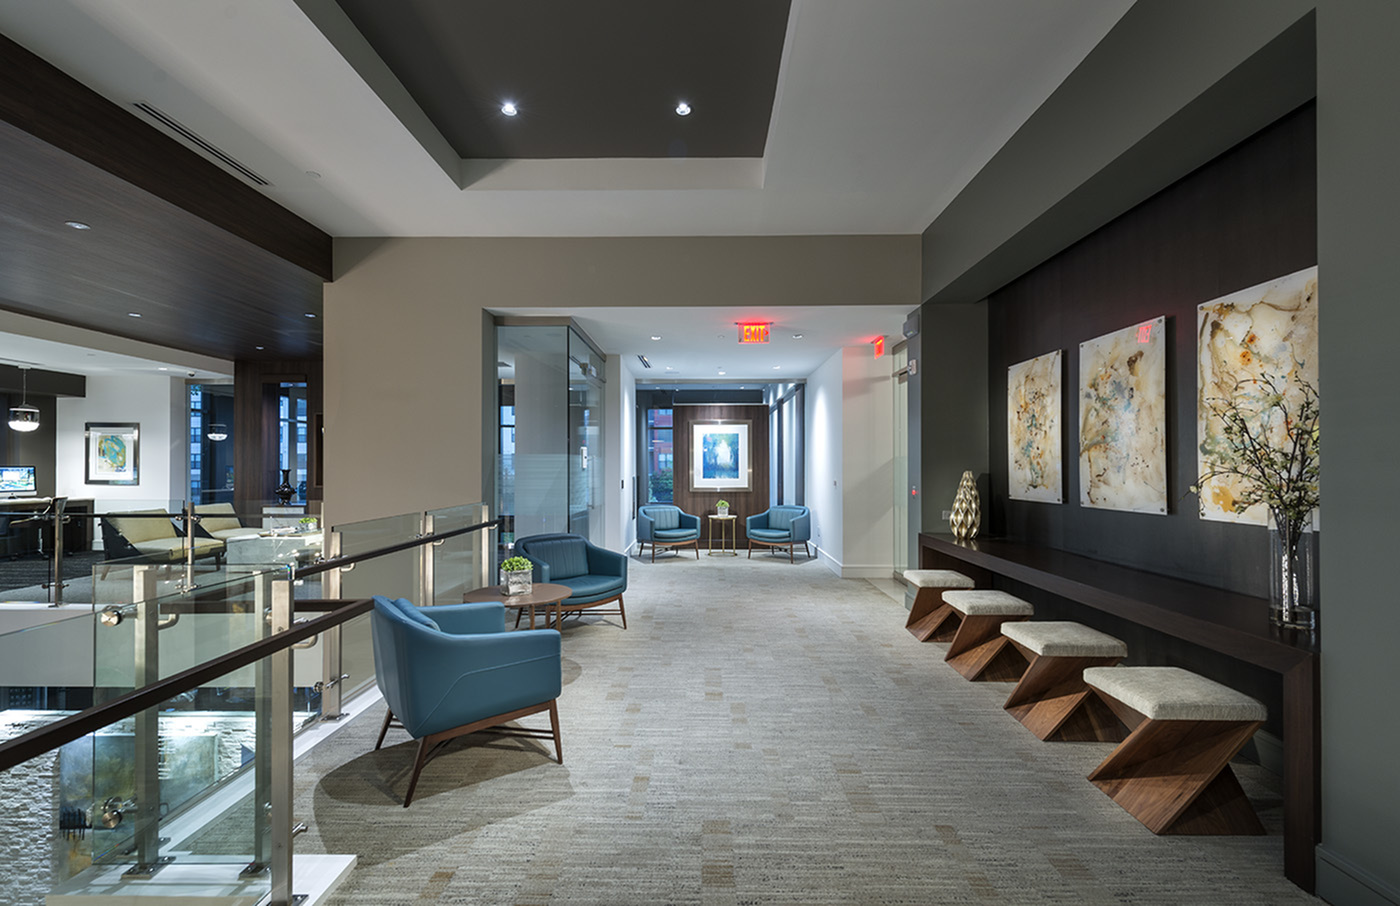 Image of Welcoming reception room with HDTV lounge for Hanover Perimeter